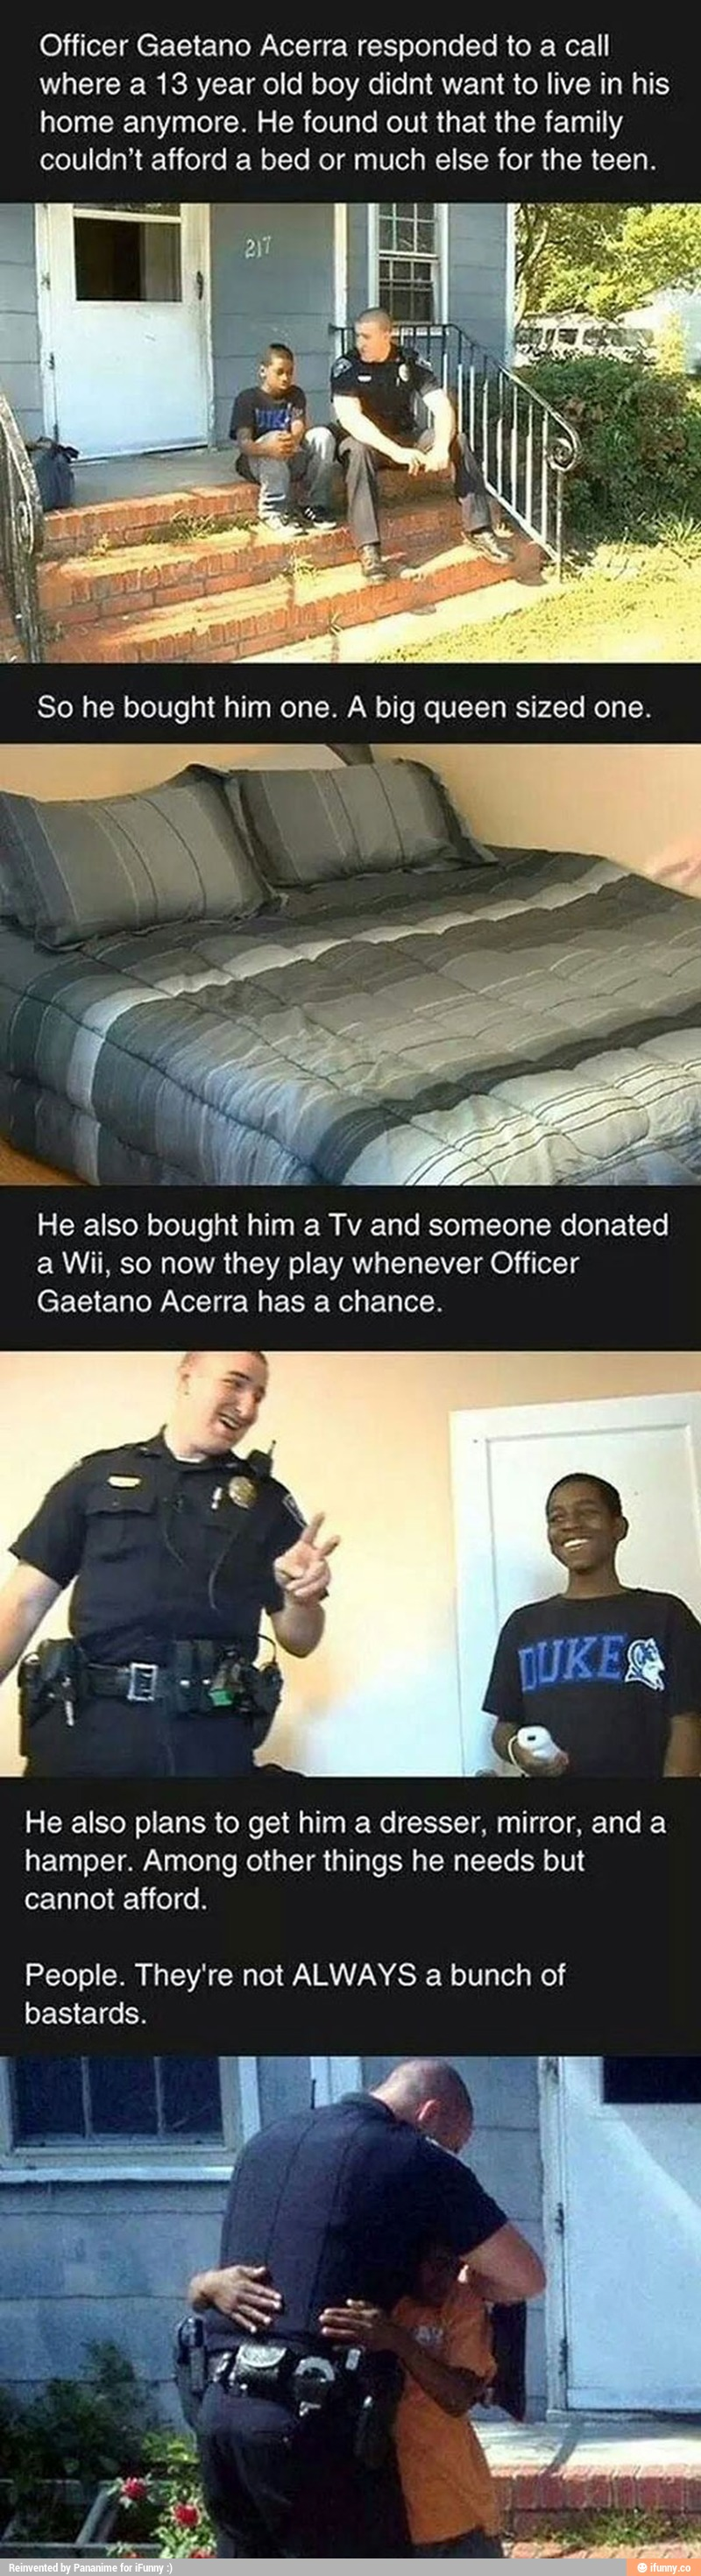 Not ALL cops are bastards, MOST of them are HEROES